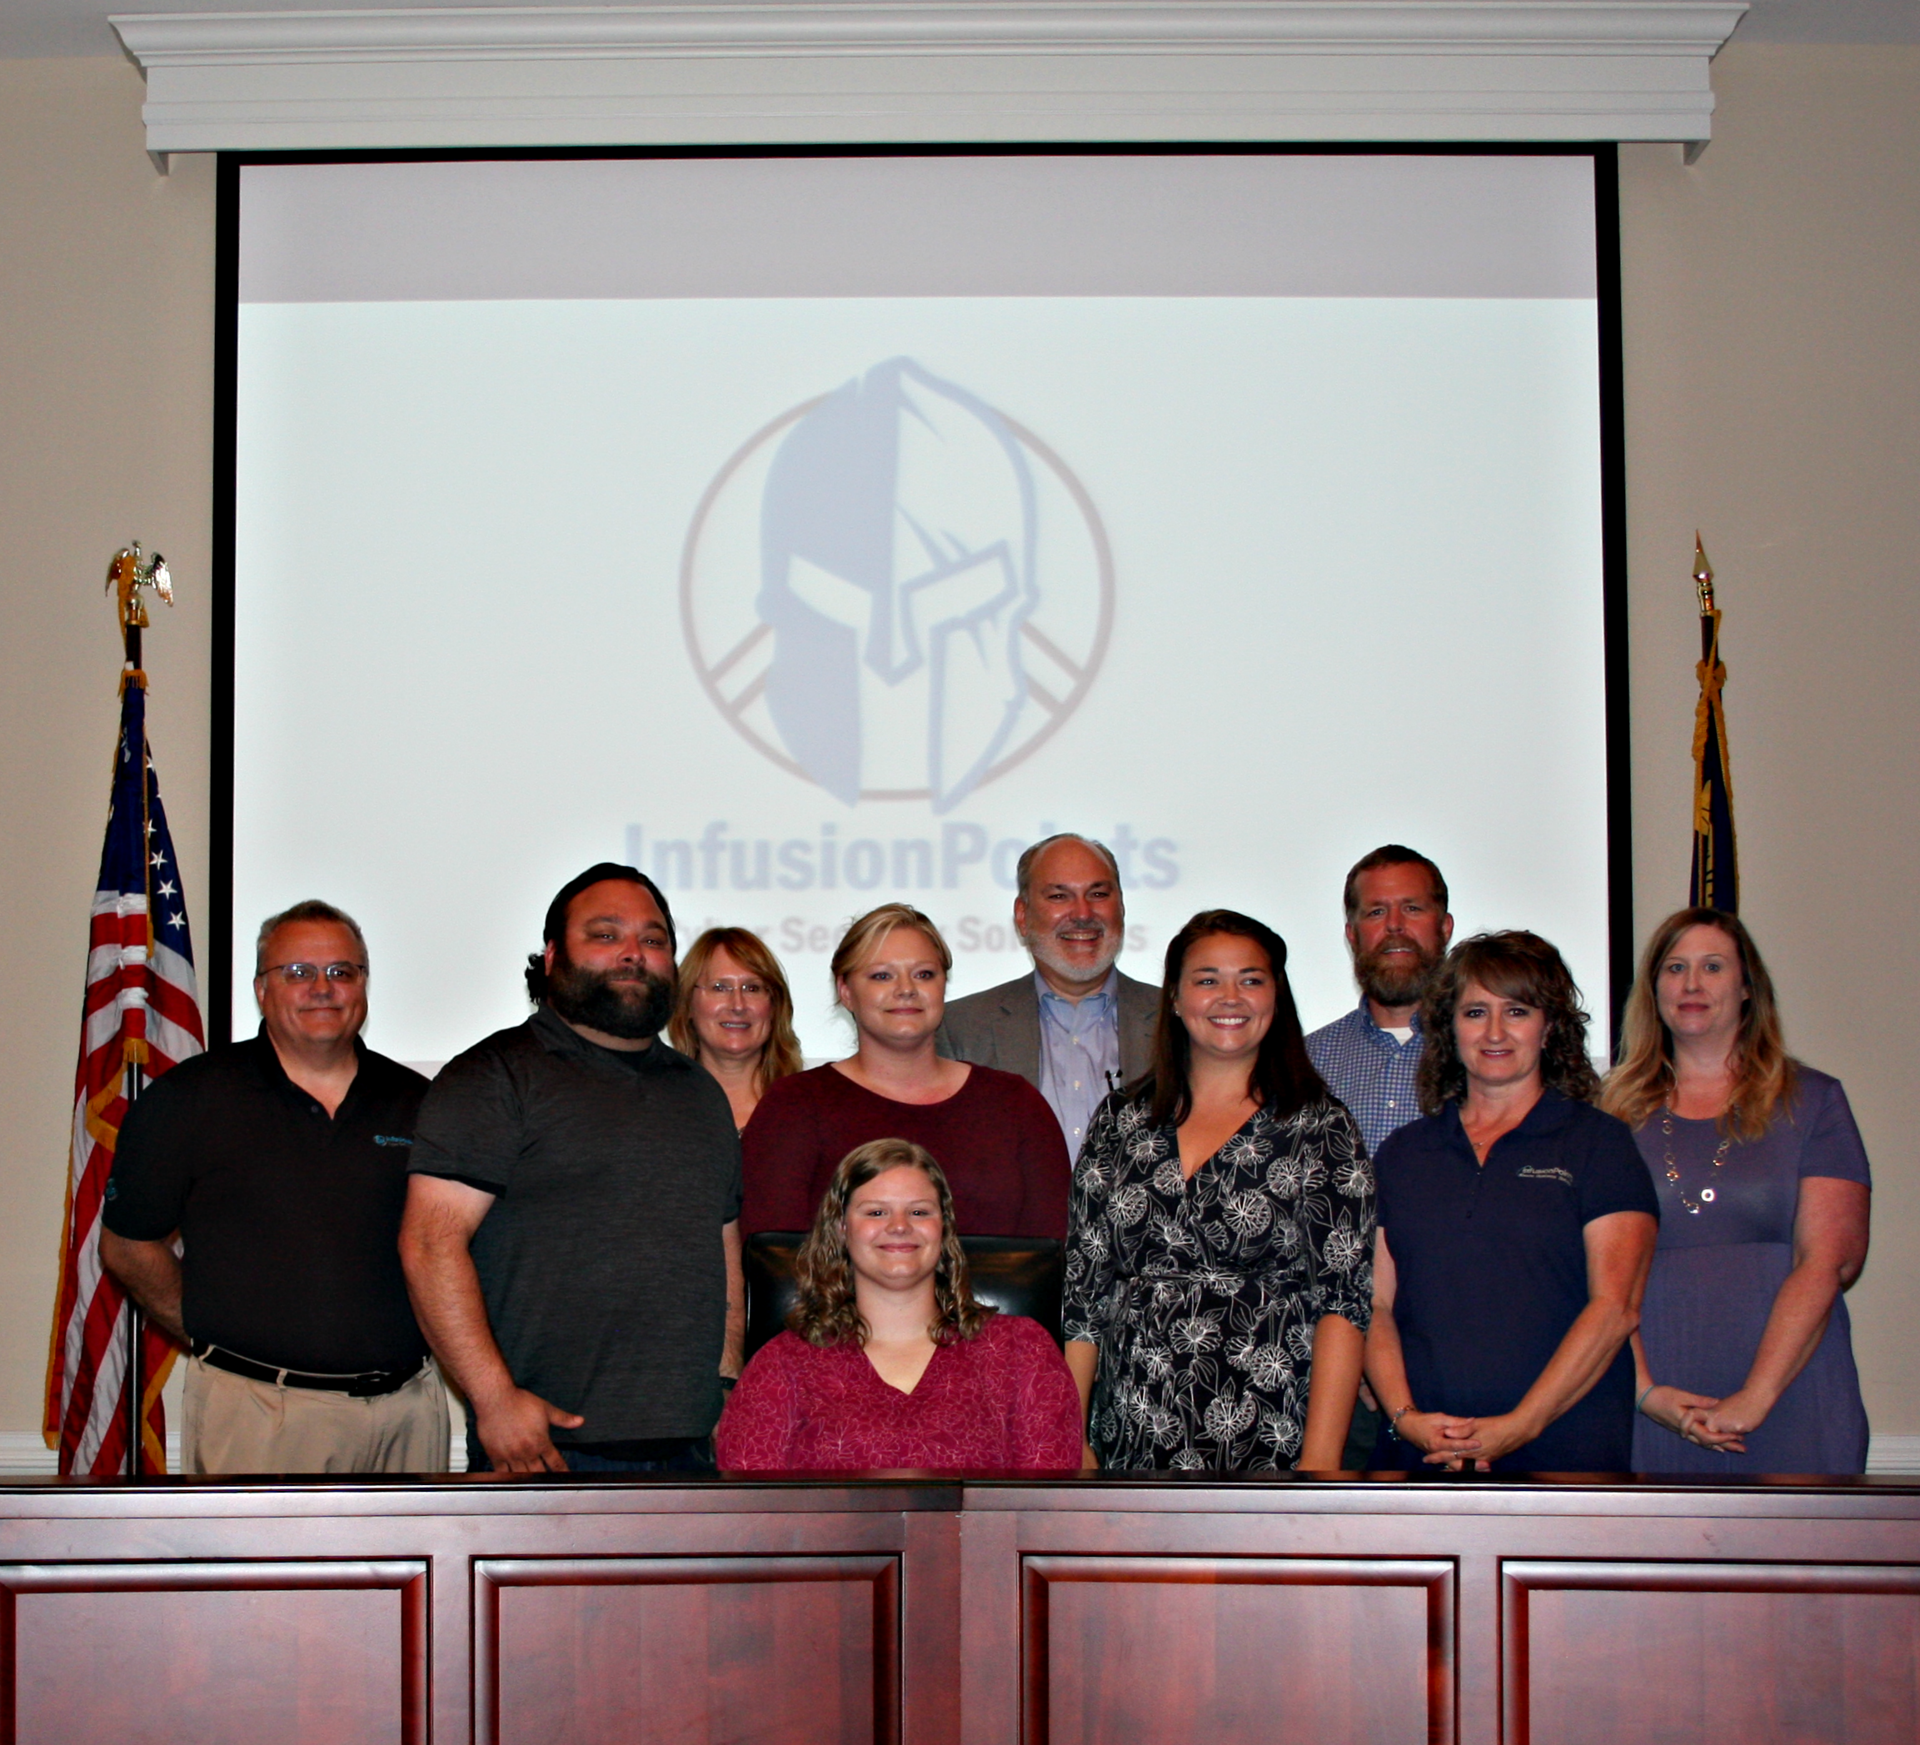 Kaitlyn Bell poses with her family in the Board Room during apprenticeship signing.